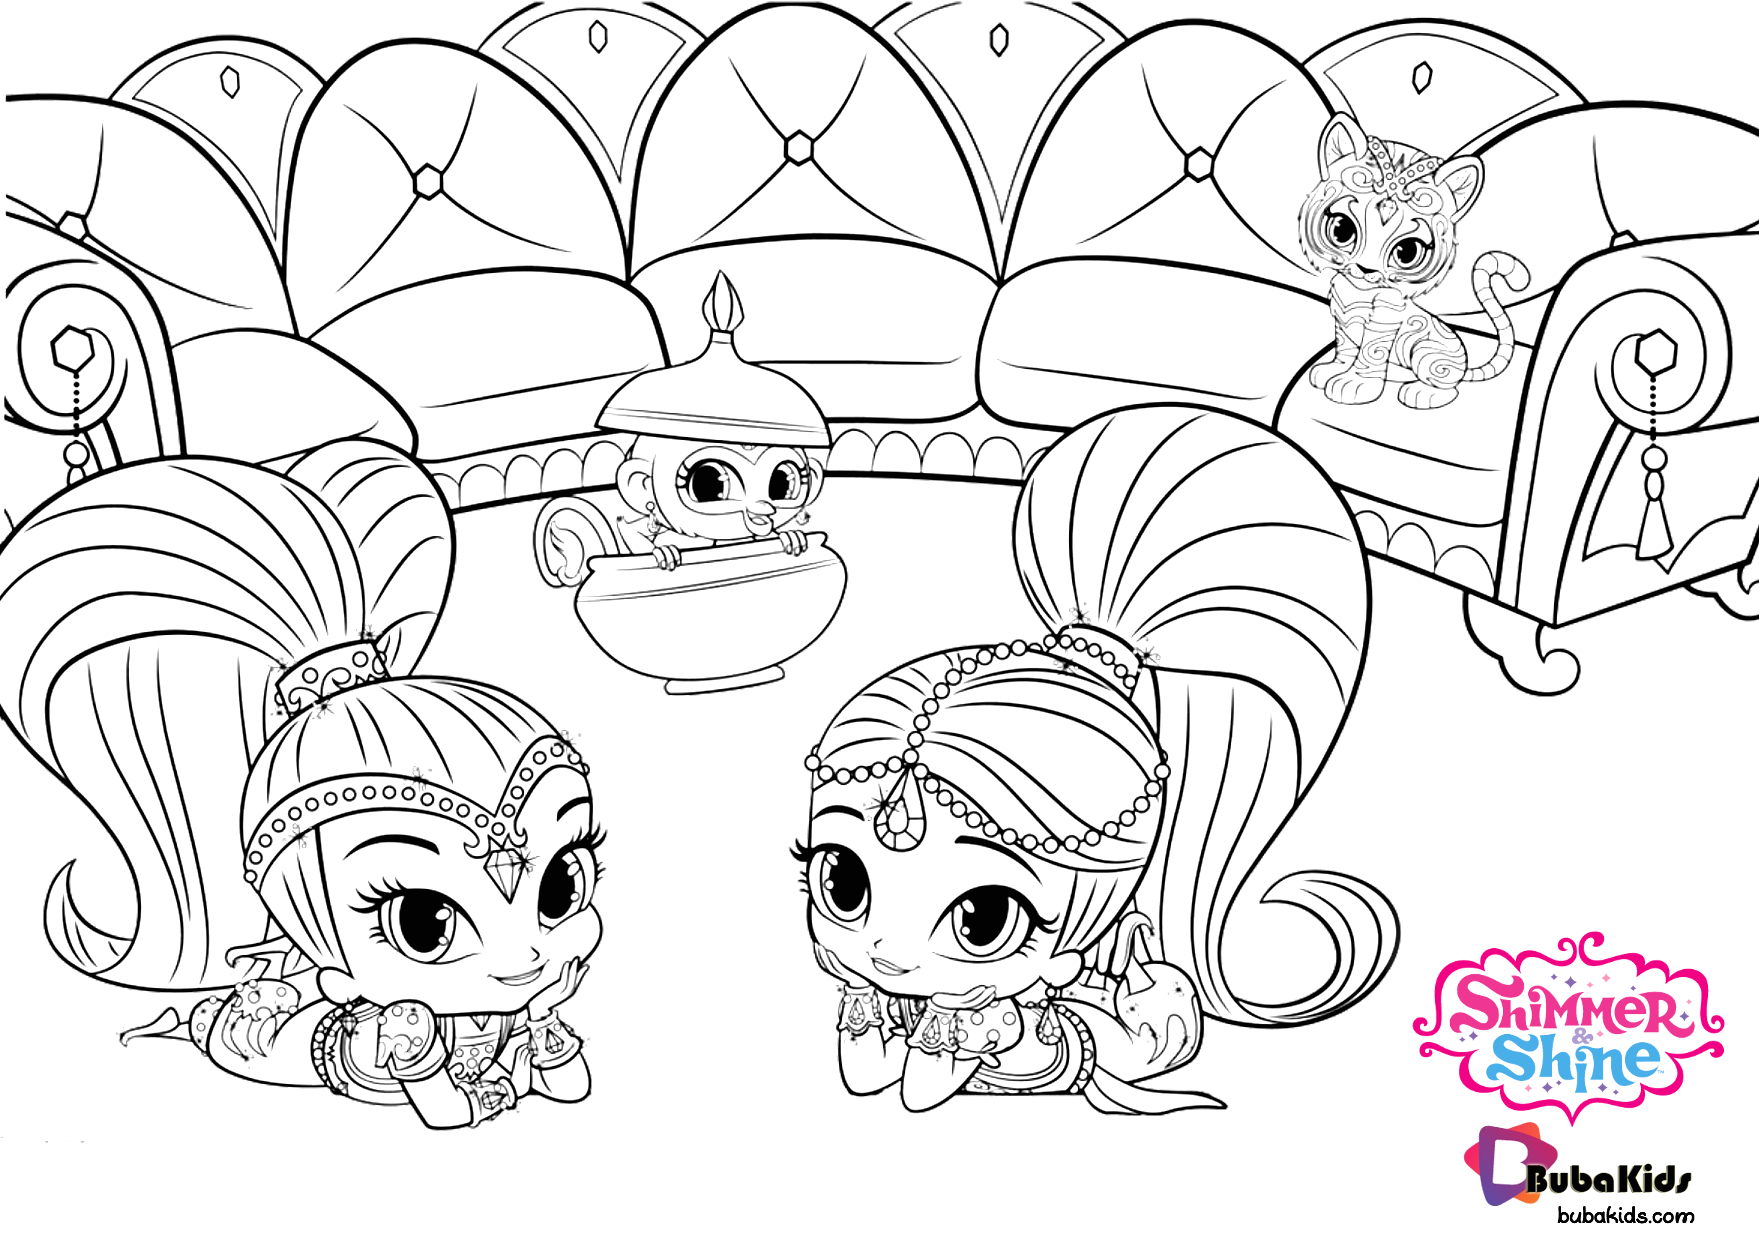 Nick Jr Coloring Pages Shimmer and Shine Nick Jr Shimmer and Shine Printable and Free Coloring Page